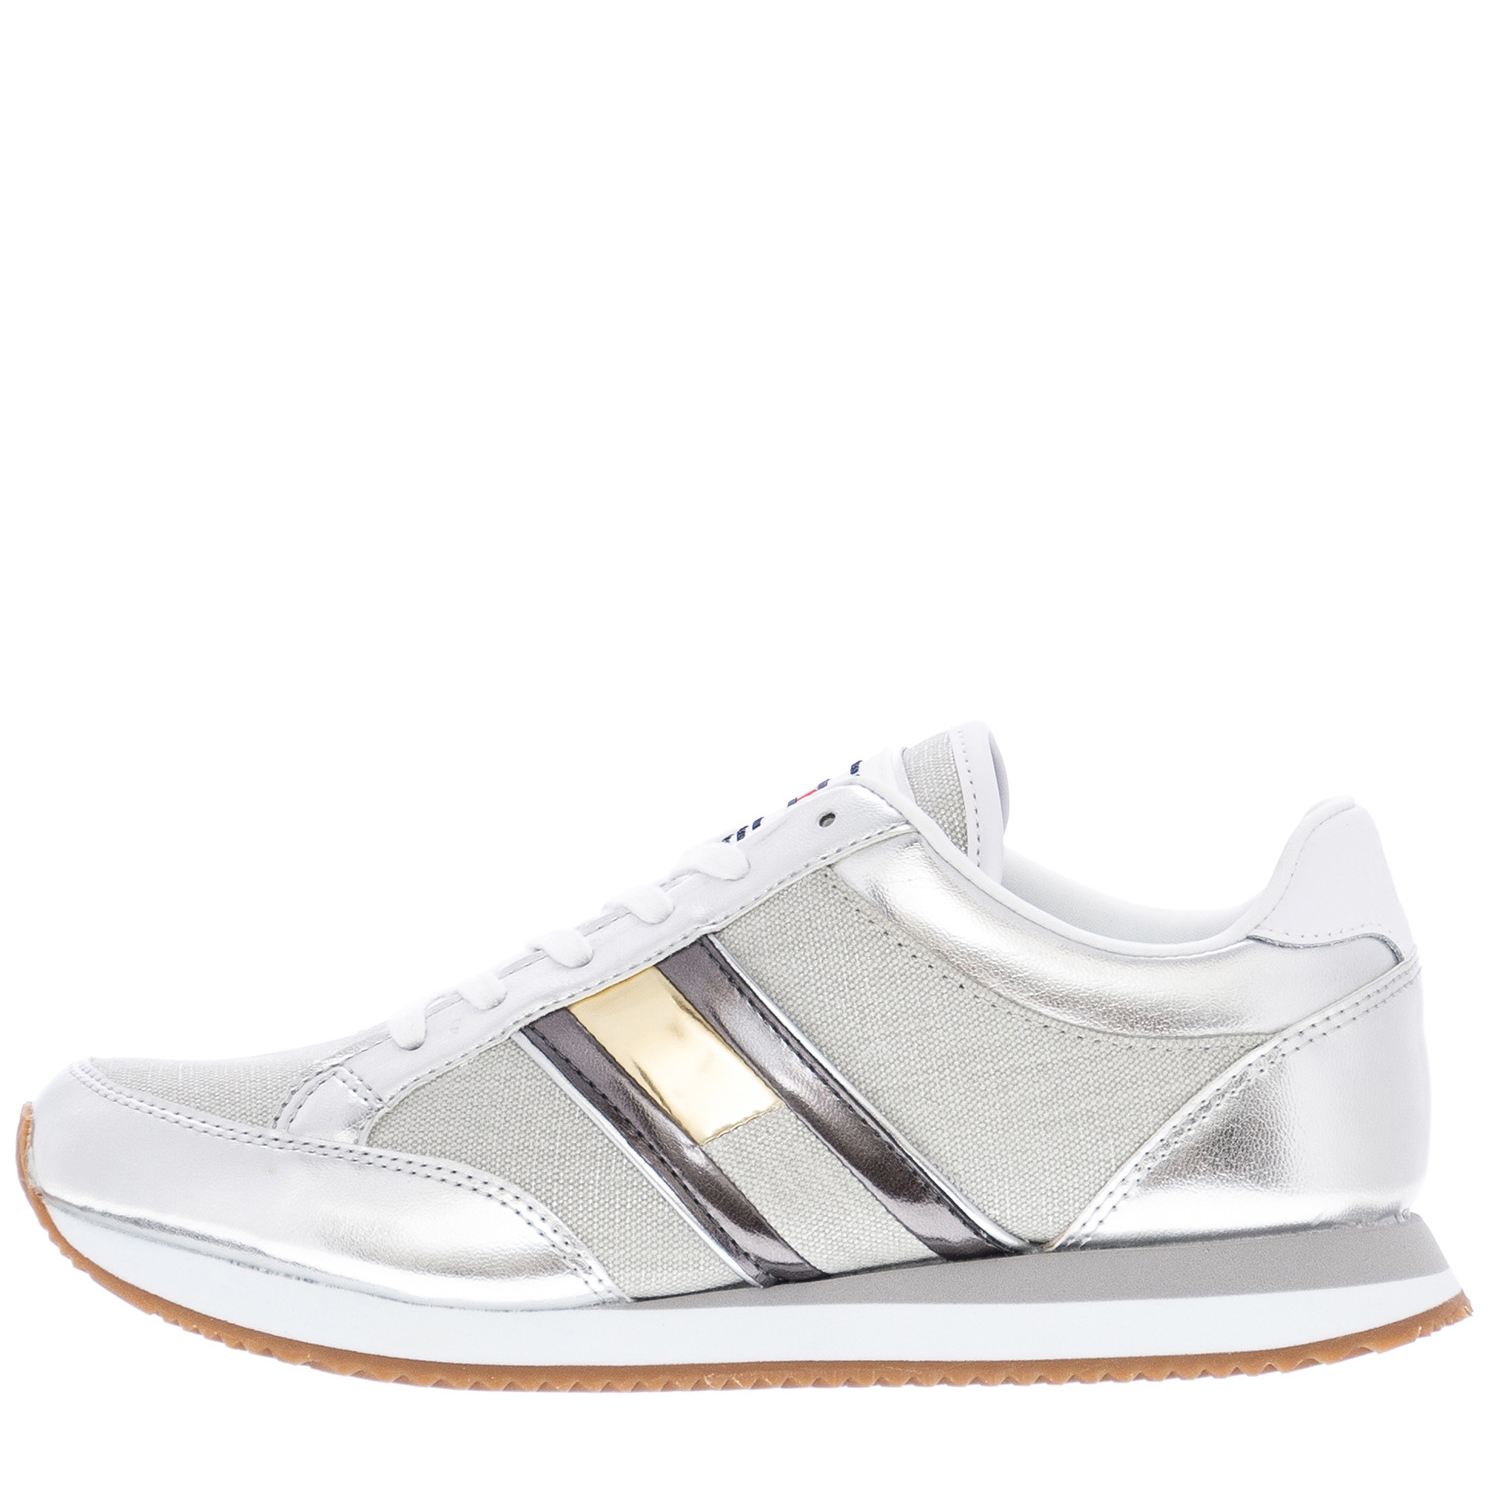 6531253a737 Γυναικεία Παπούτσια Casual Retro.Sneaker Ασημί ECOleather Tommy Hilfiger